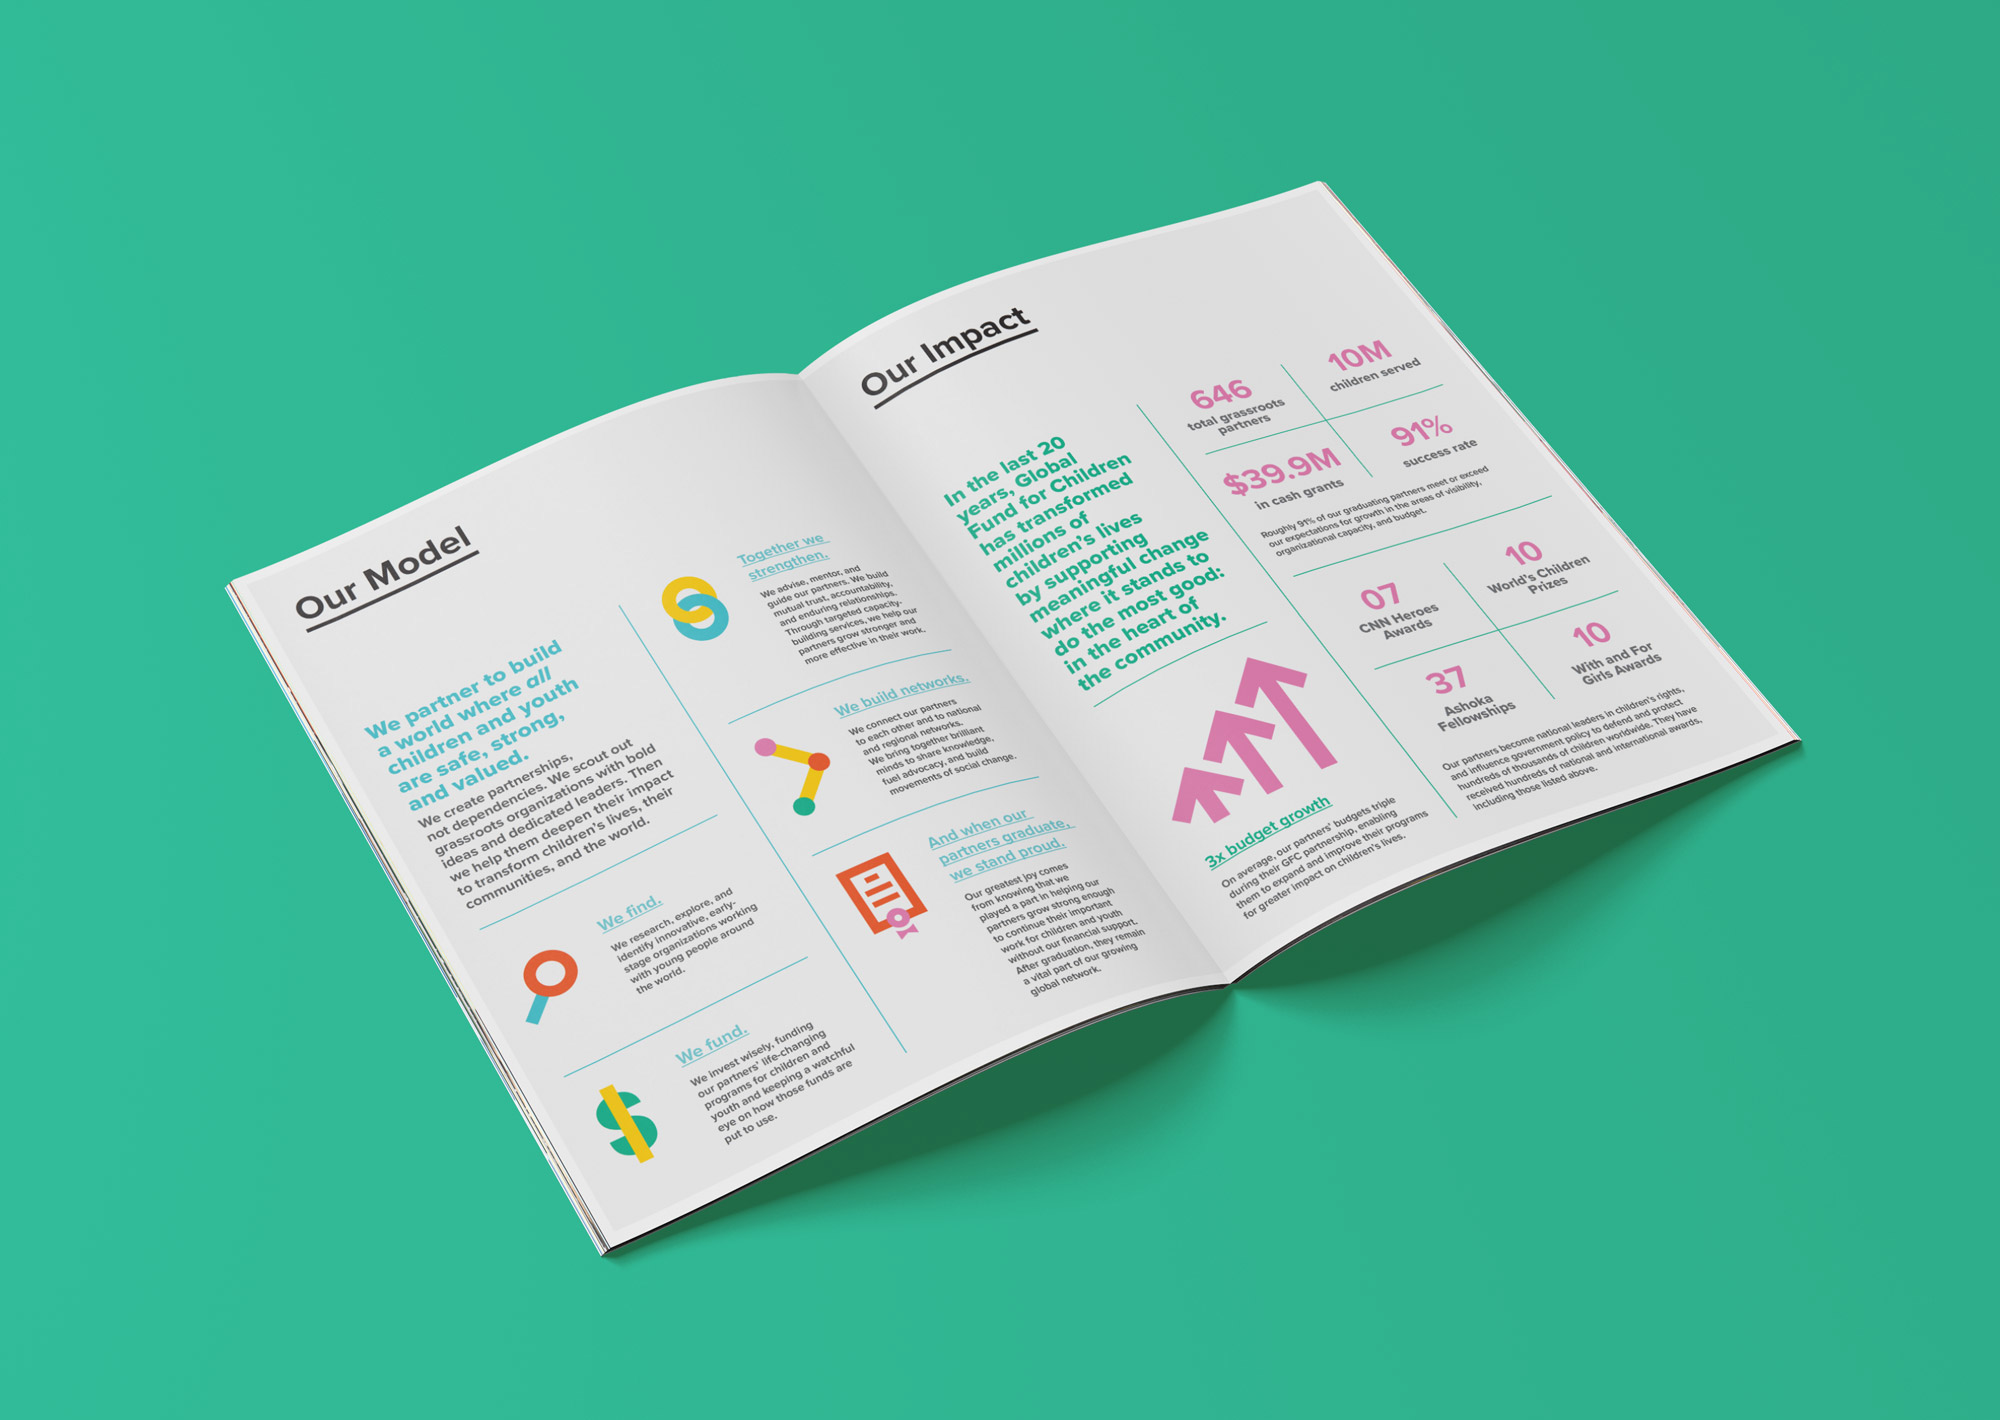 13+ Annual Report Design Examples & Ideas - Daily Design Inspiration ...